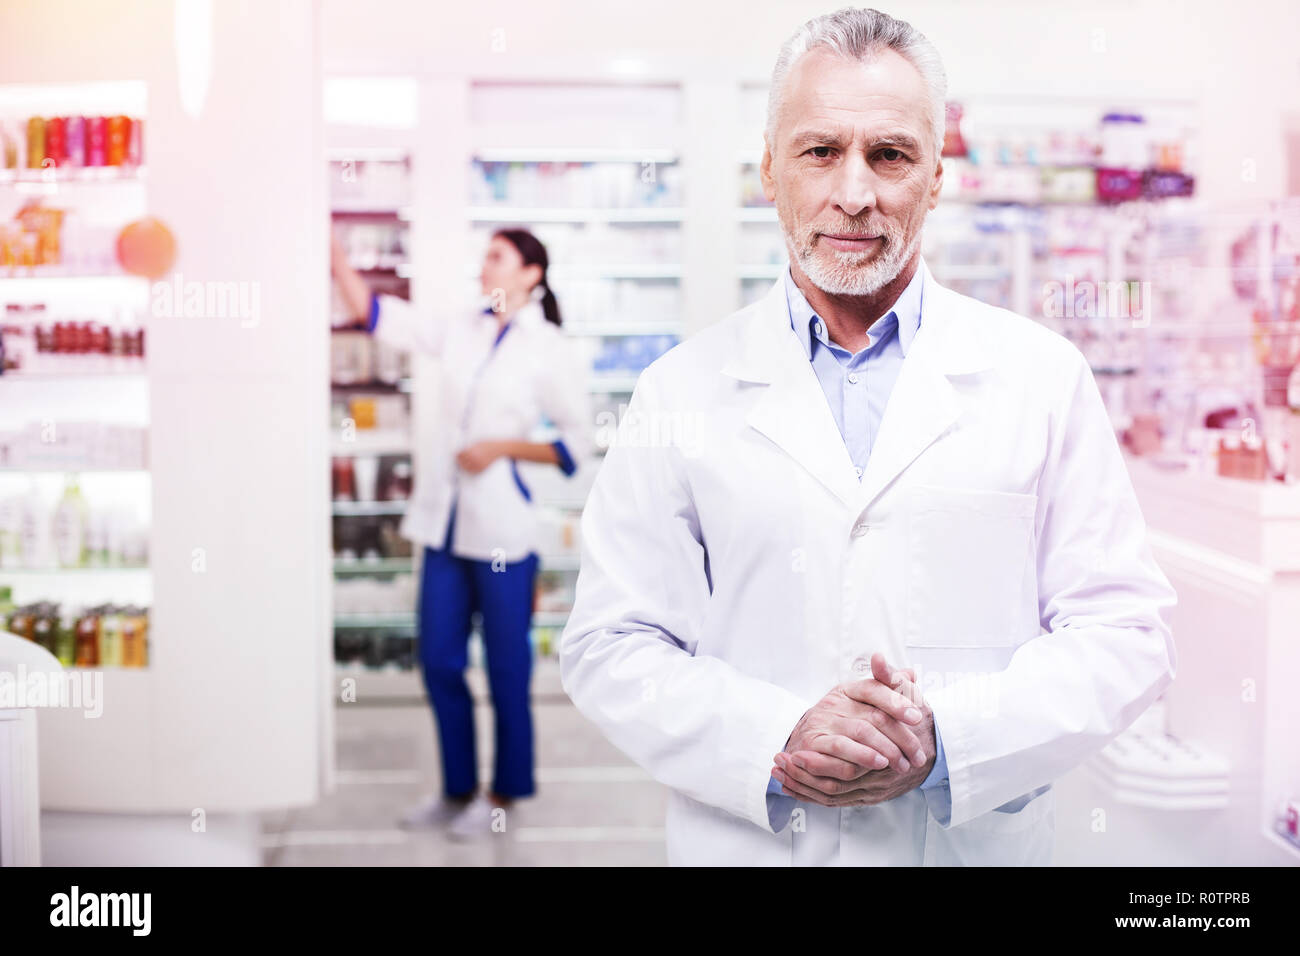 Serious gray-haired scientist in a uniform folding his arms - Stock Image